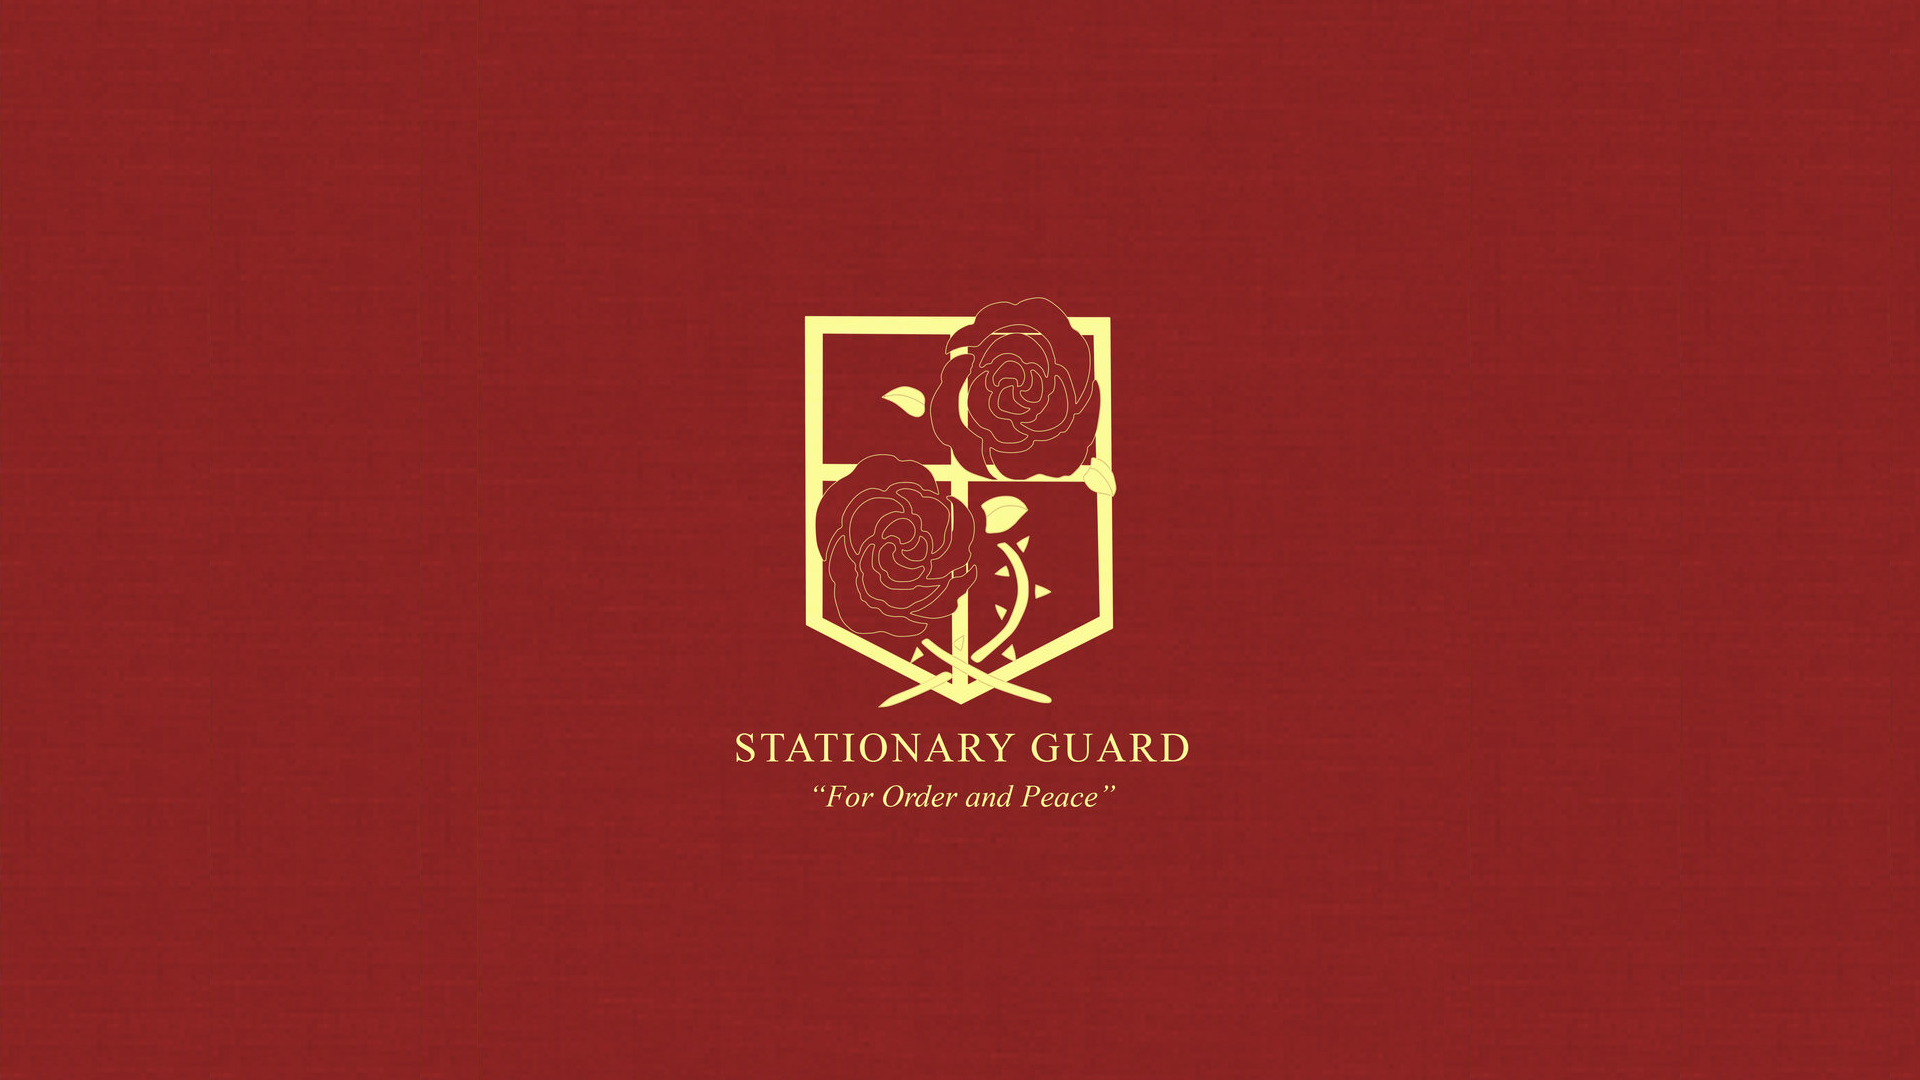 Attack on Titan Stationary Guard Wallpaper by Imxset21